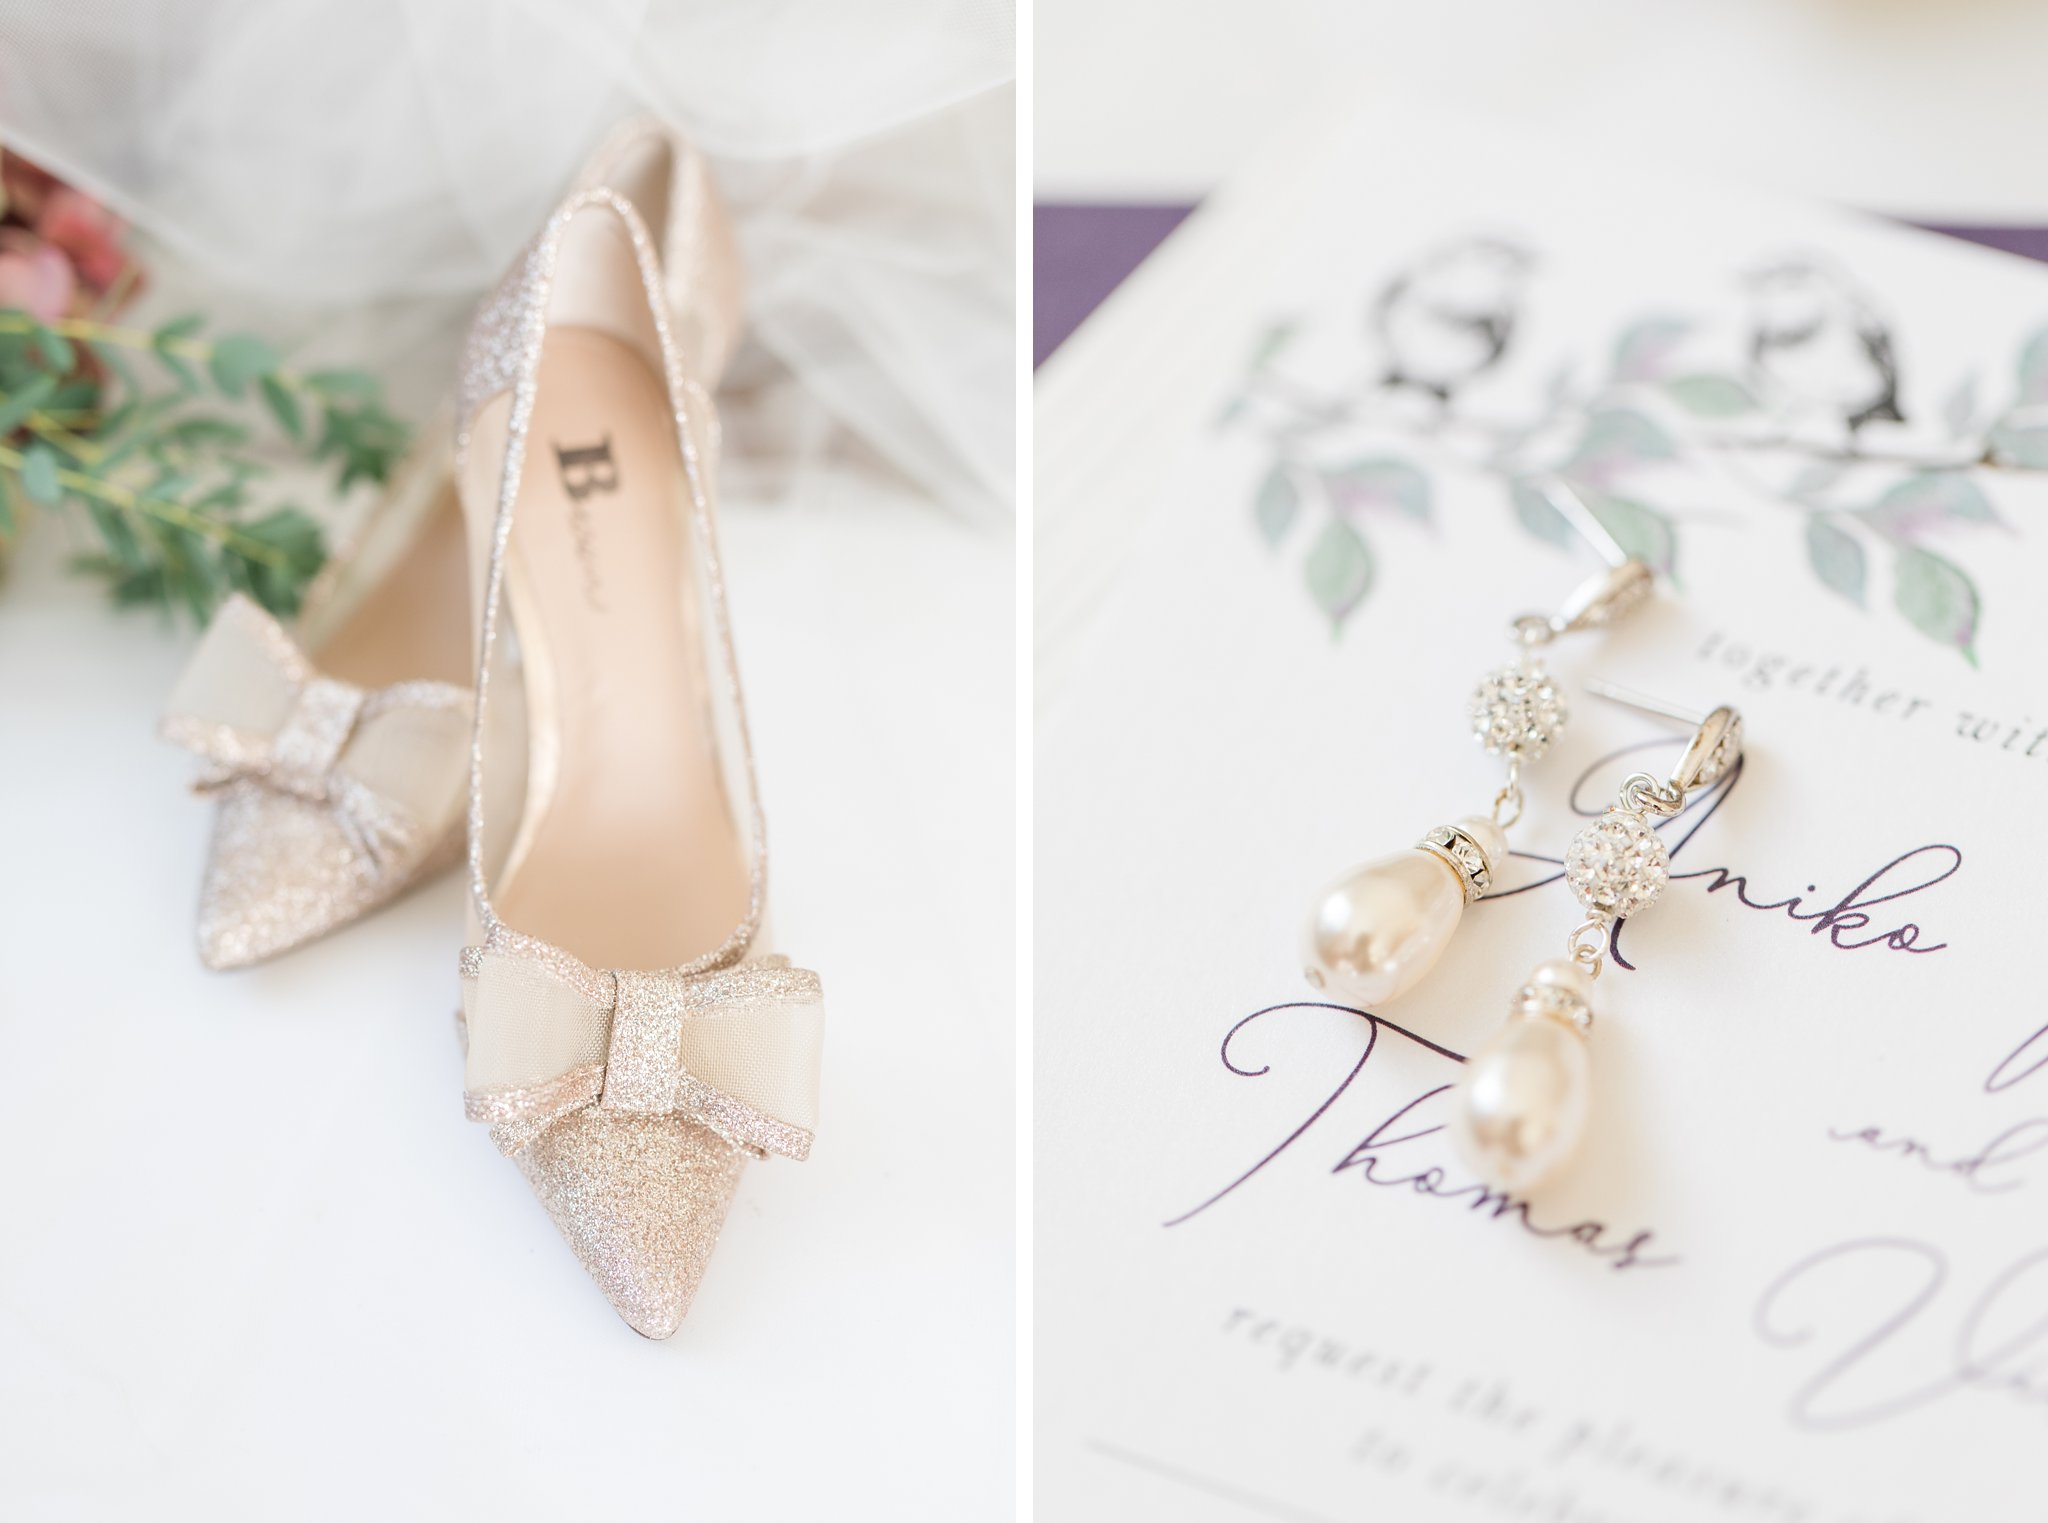 Tear drop pearl earrings with gold bow heels A Festive Fall Wedding at the Canadian Museum of Nature